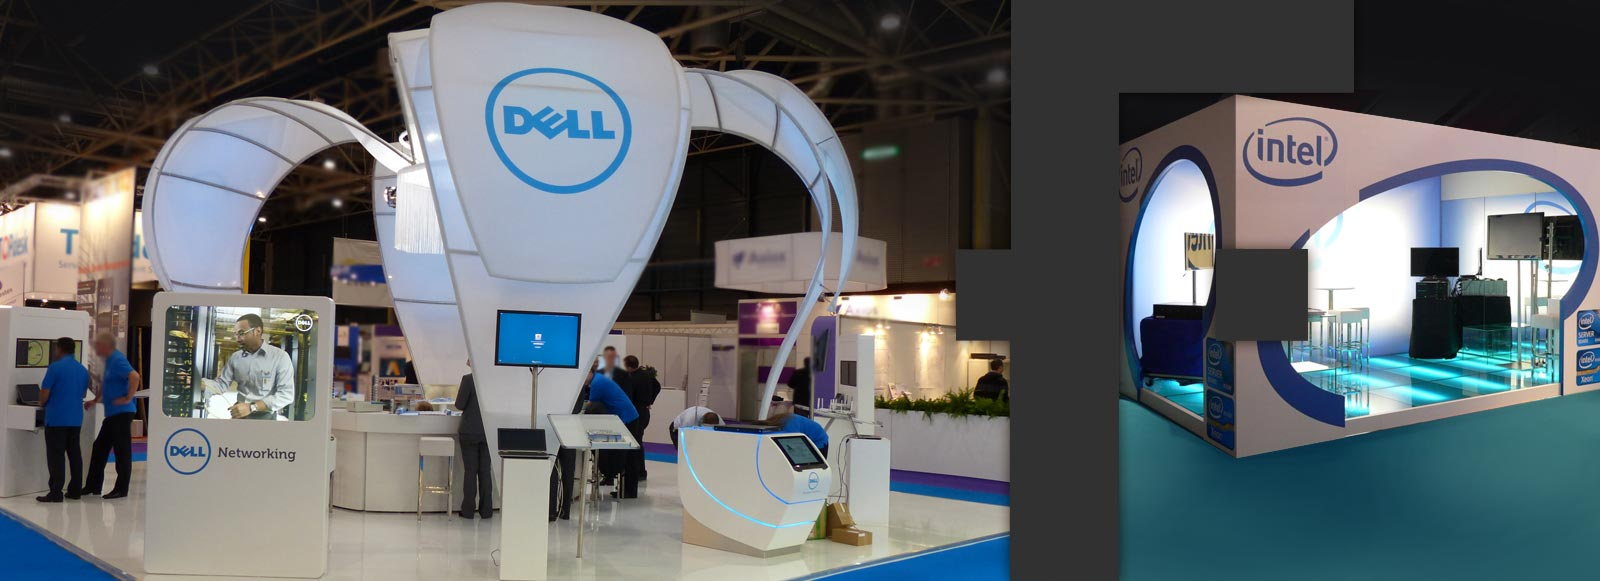 Messestand Dell und Intel